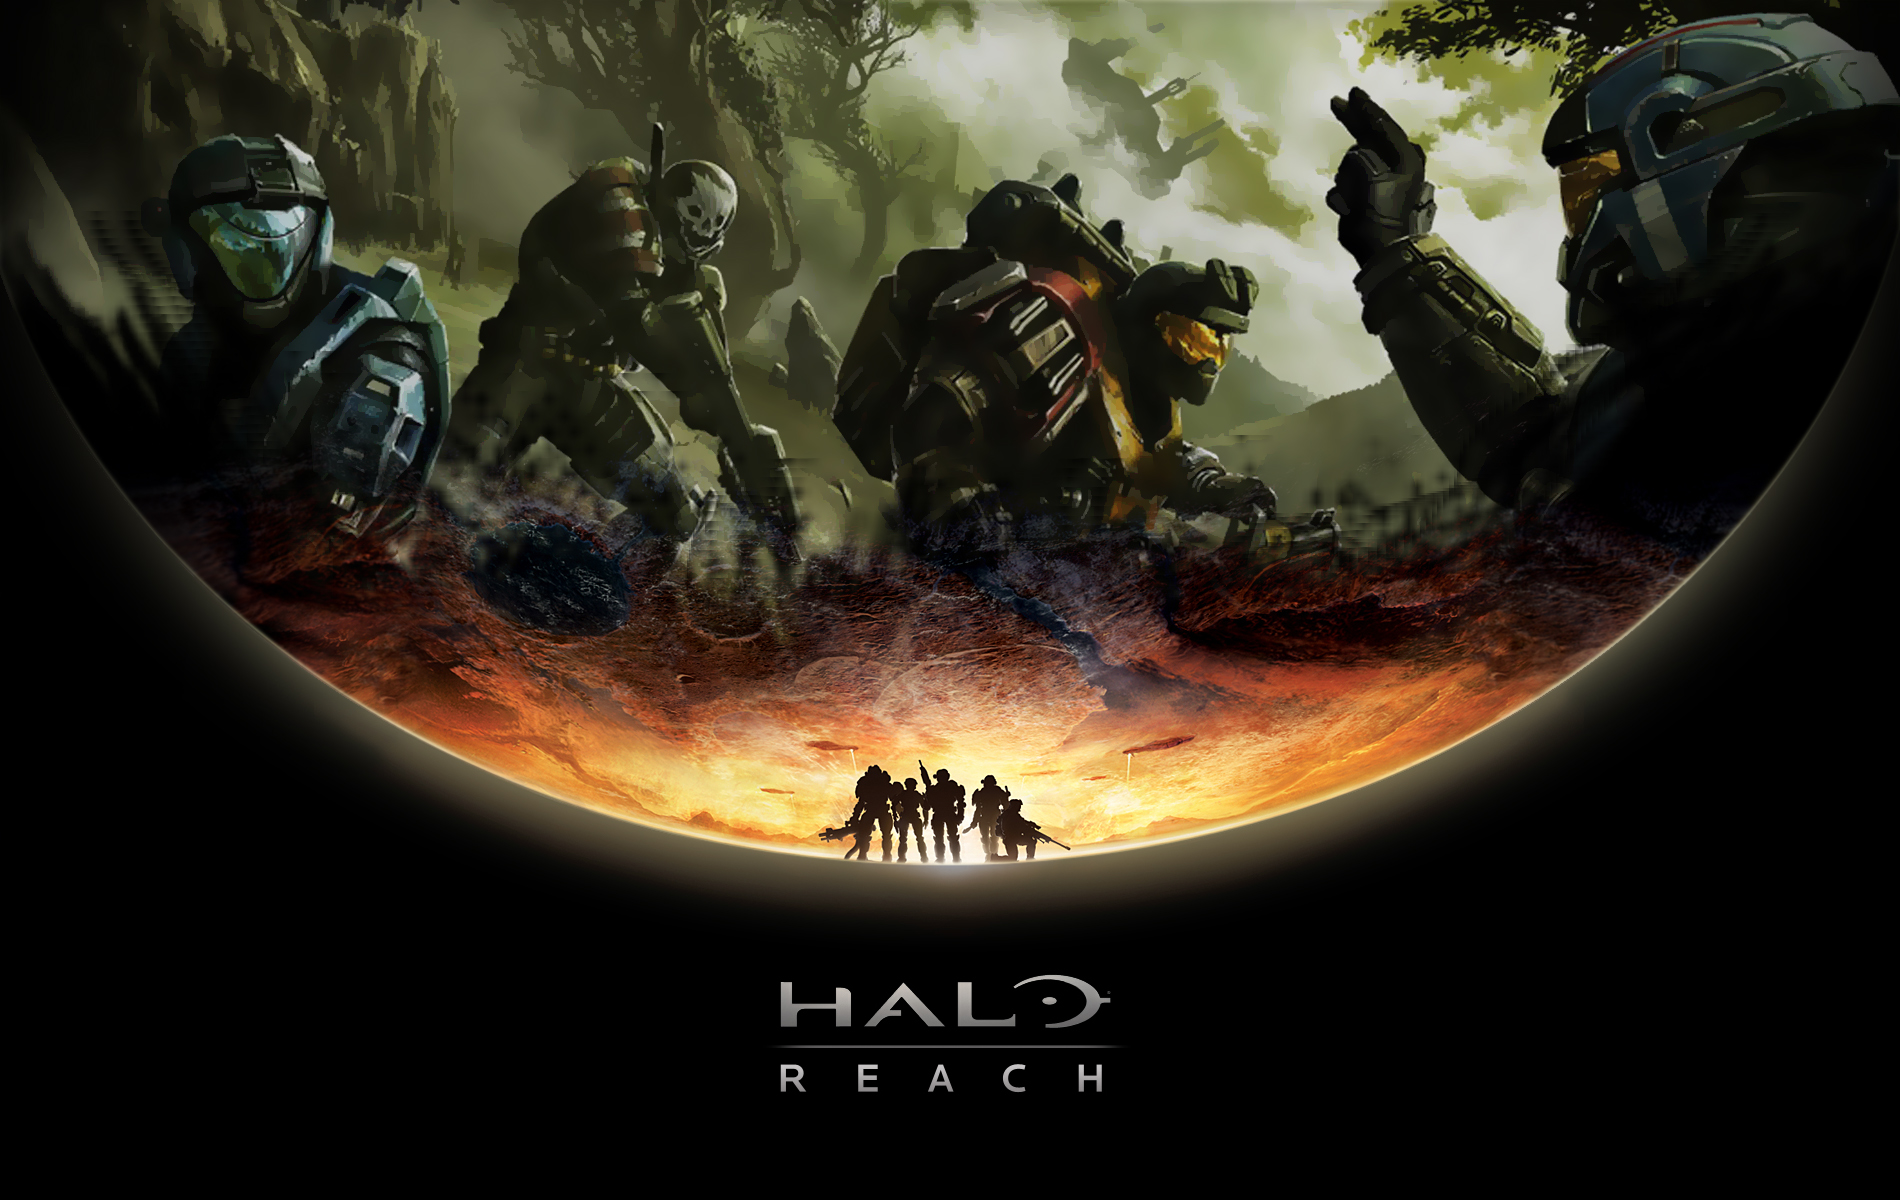 Epic Halo Reach Wallpapers 1900x1200